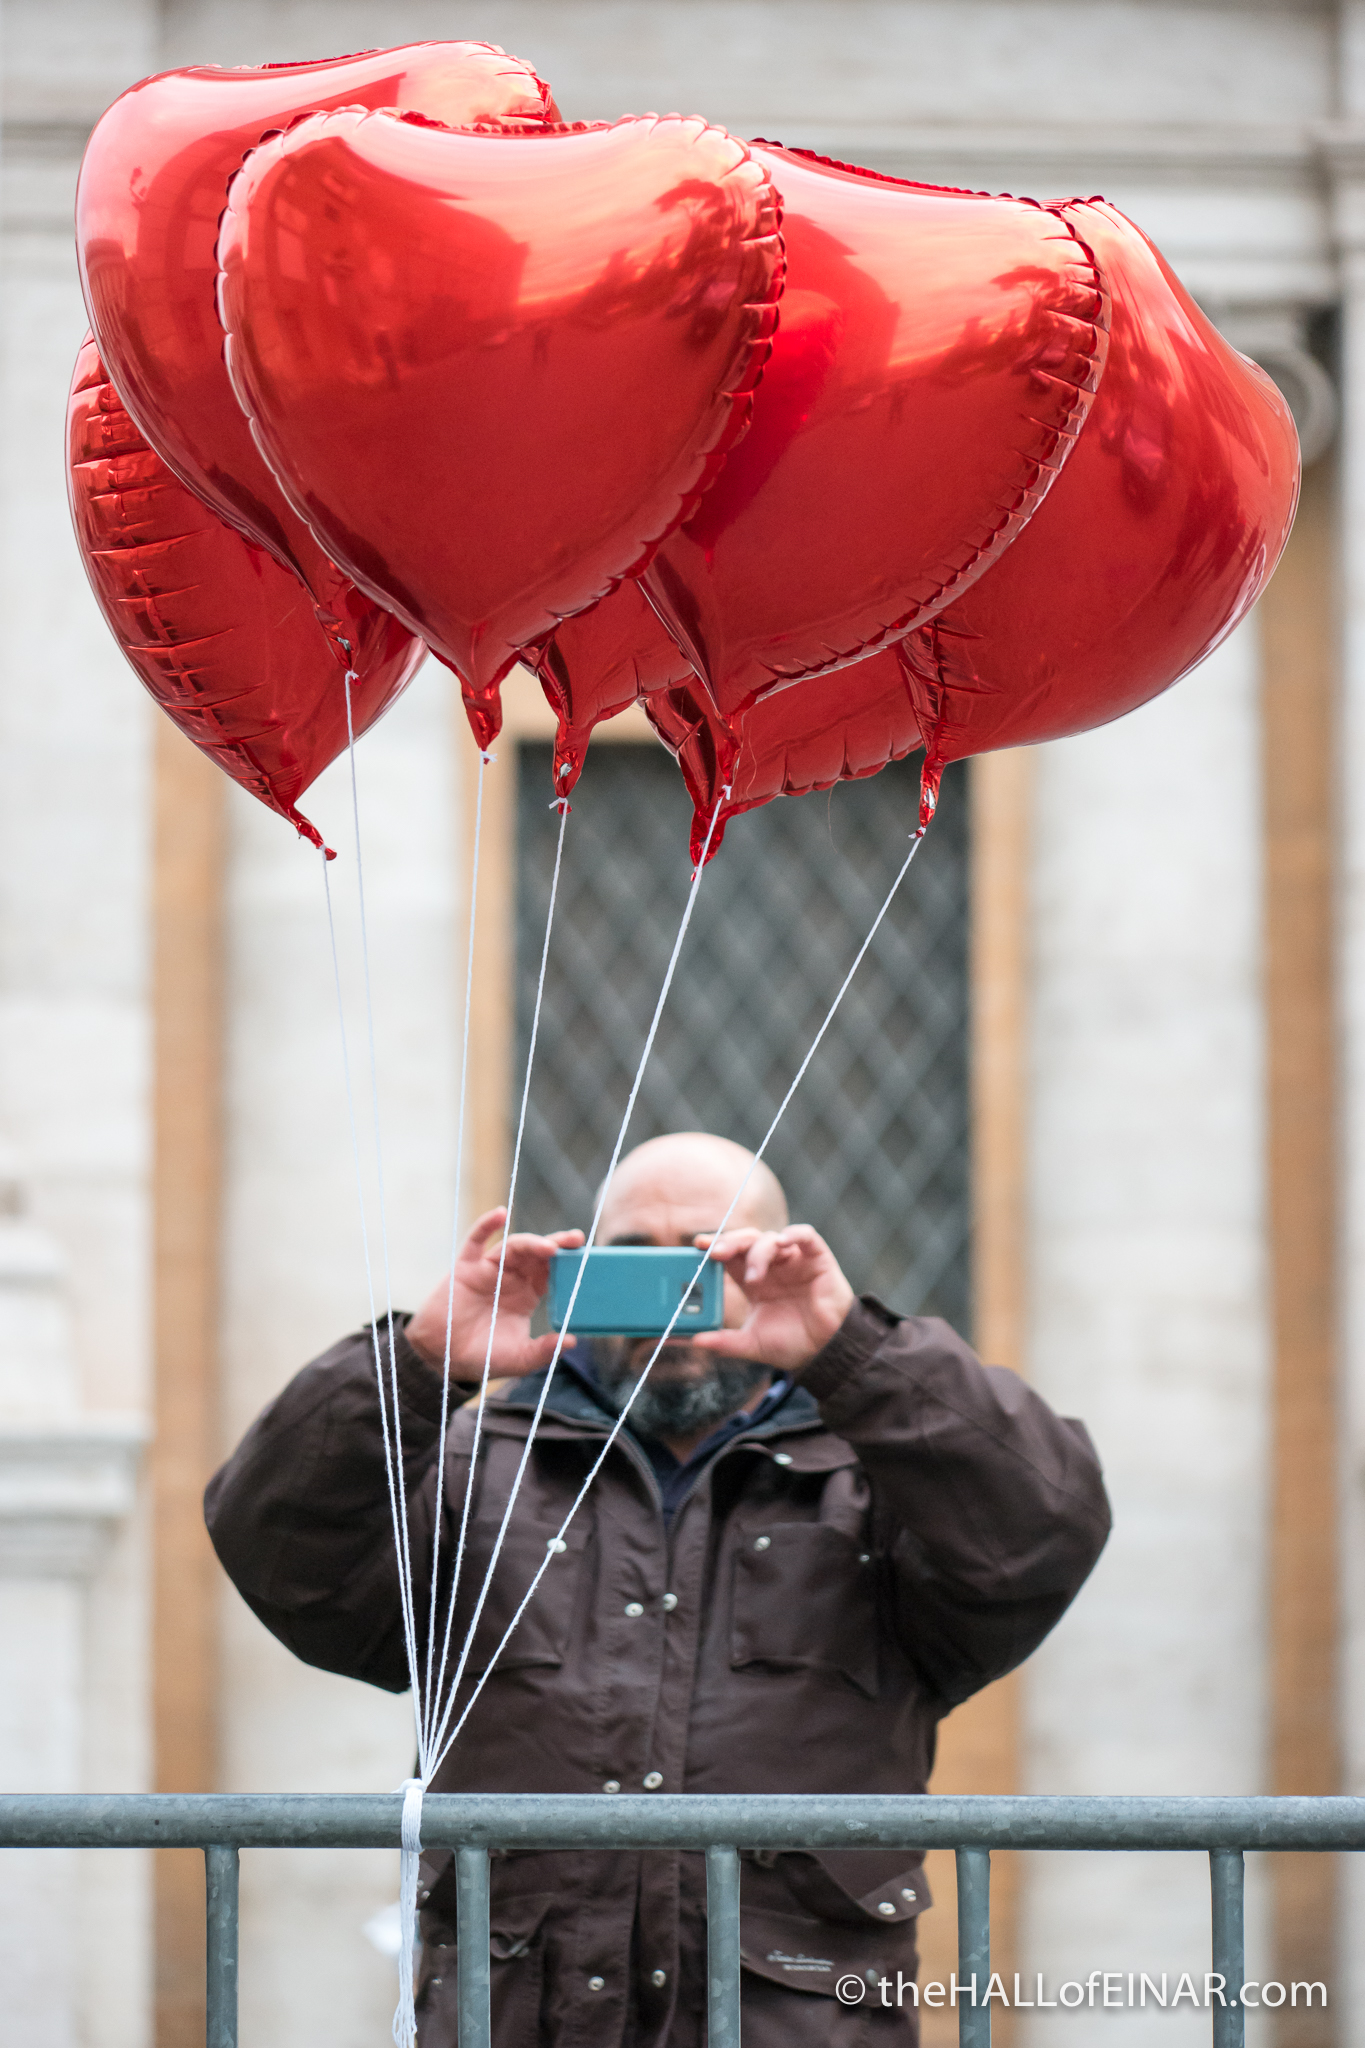 Love Balloons - The Hall of Einar - photograph (c) David Bailey (not the)